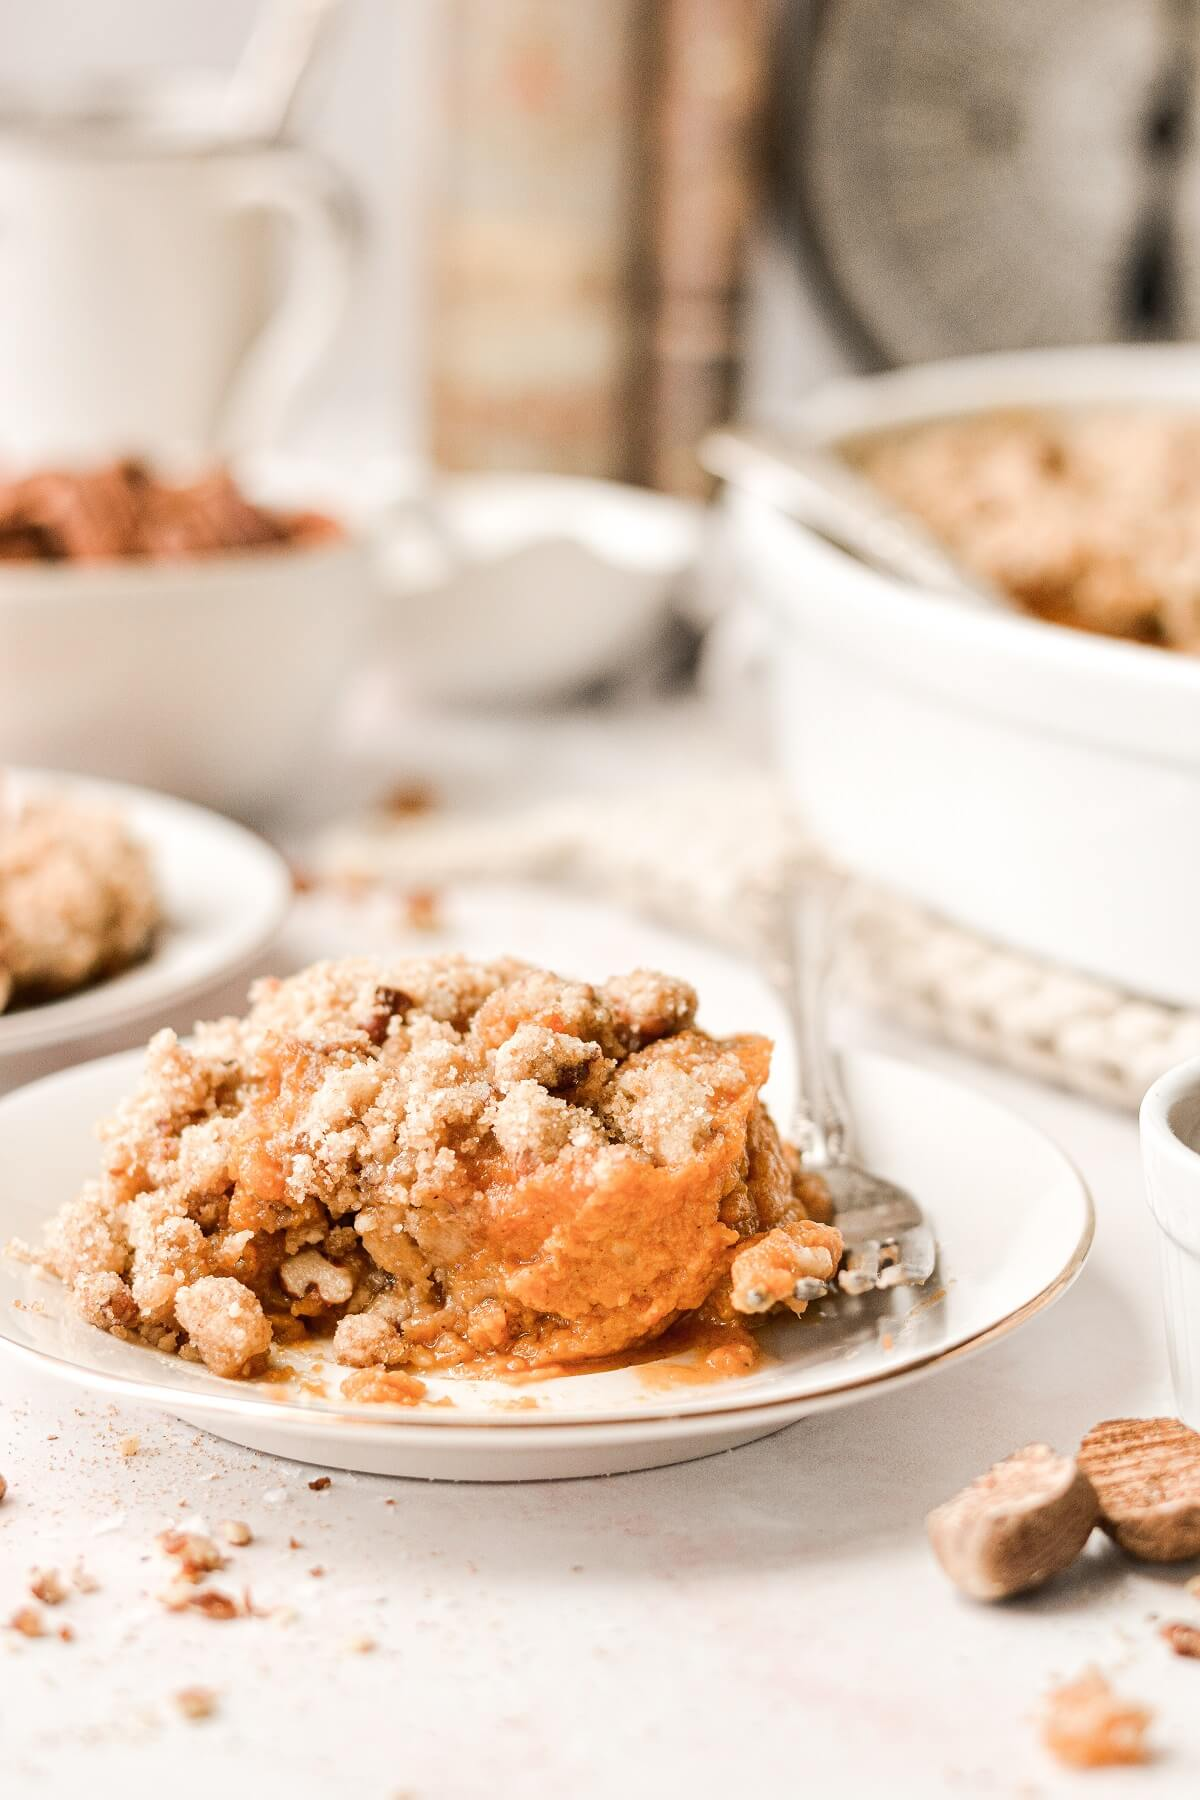 A scoop of sweet potato casserole with crumb topping on a white plate.